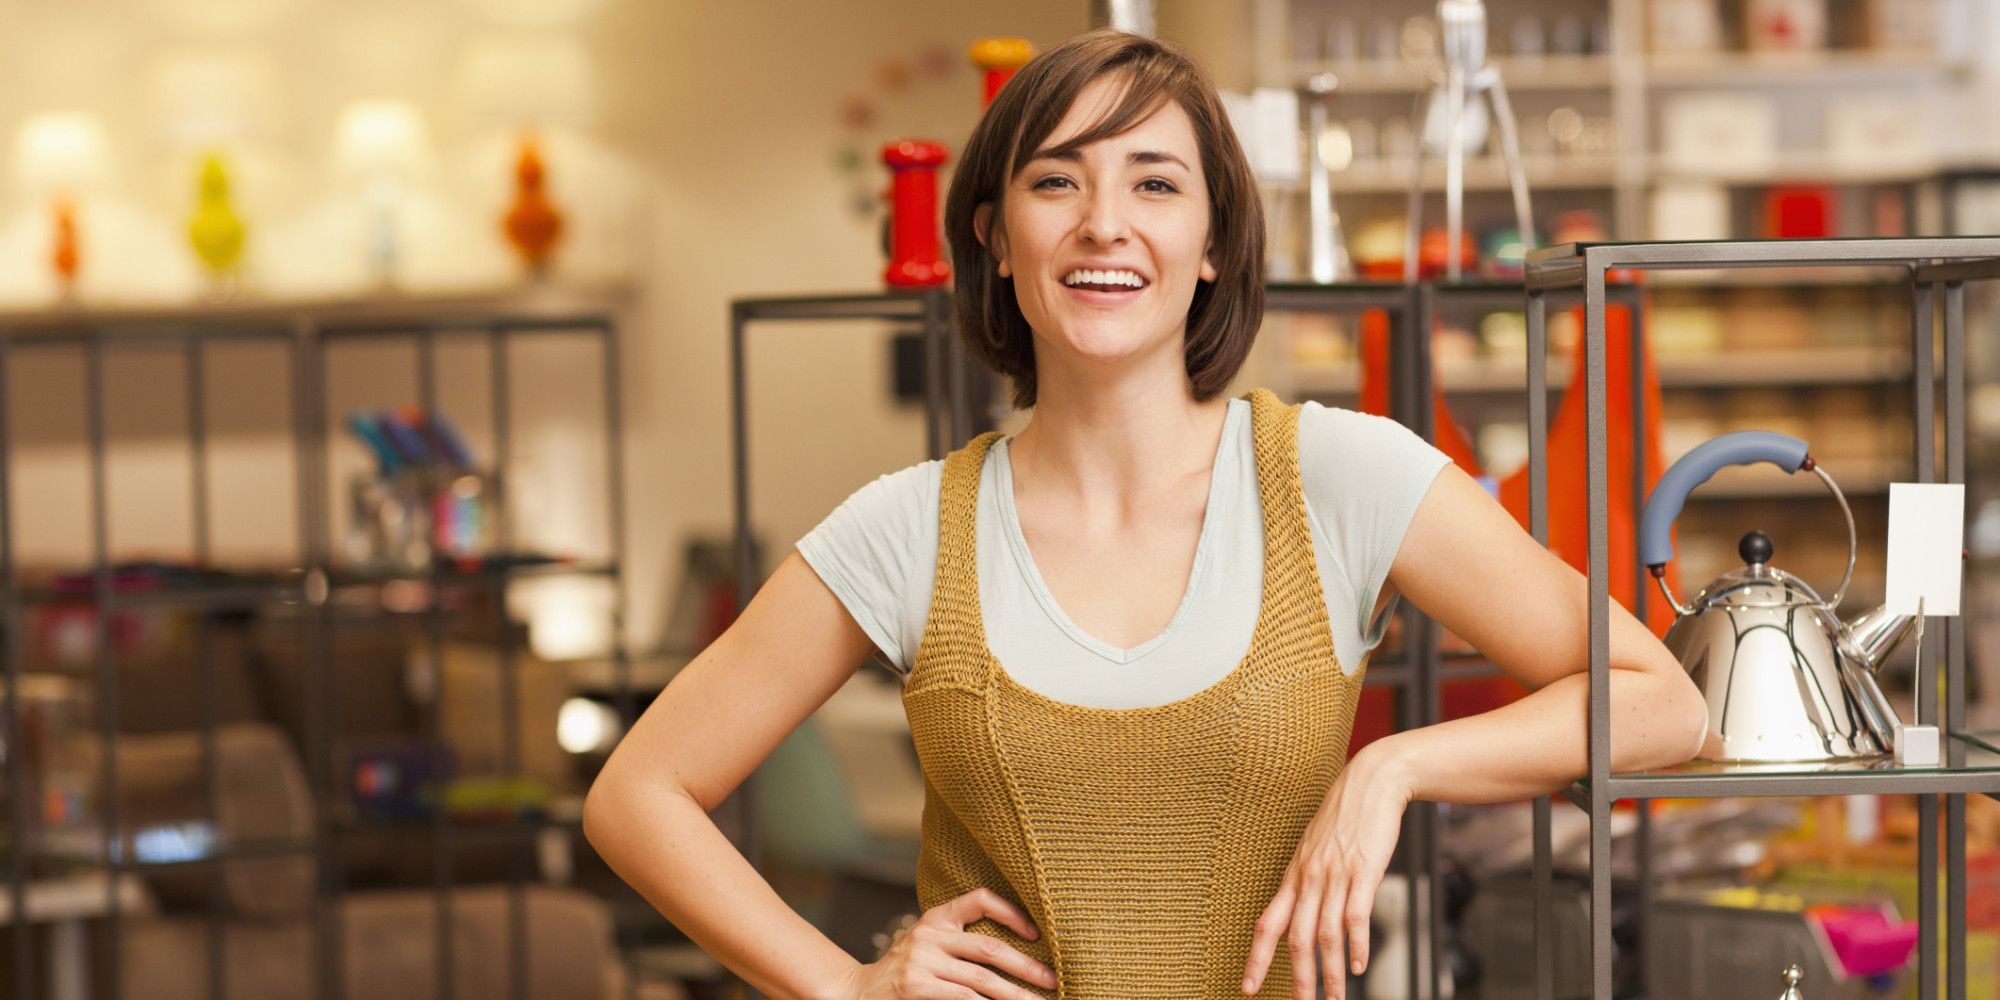 Small Business Owner Open Sign Helping Women Business Owners At